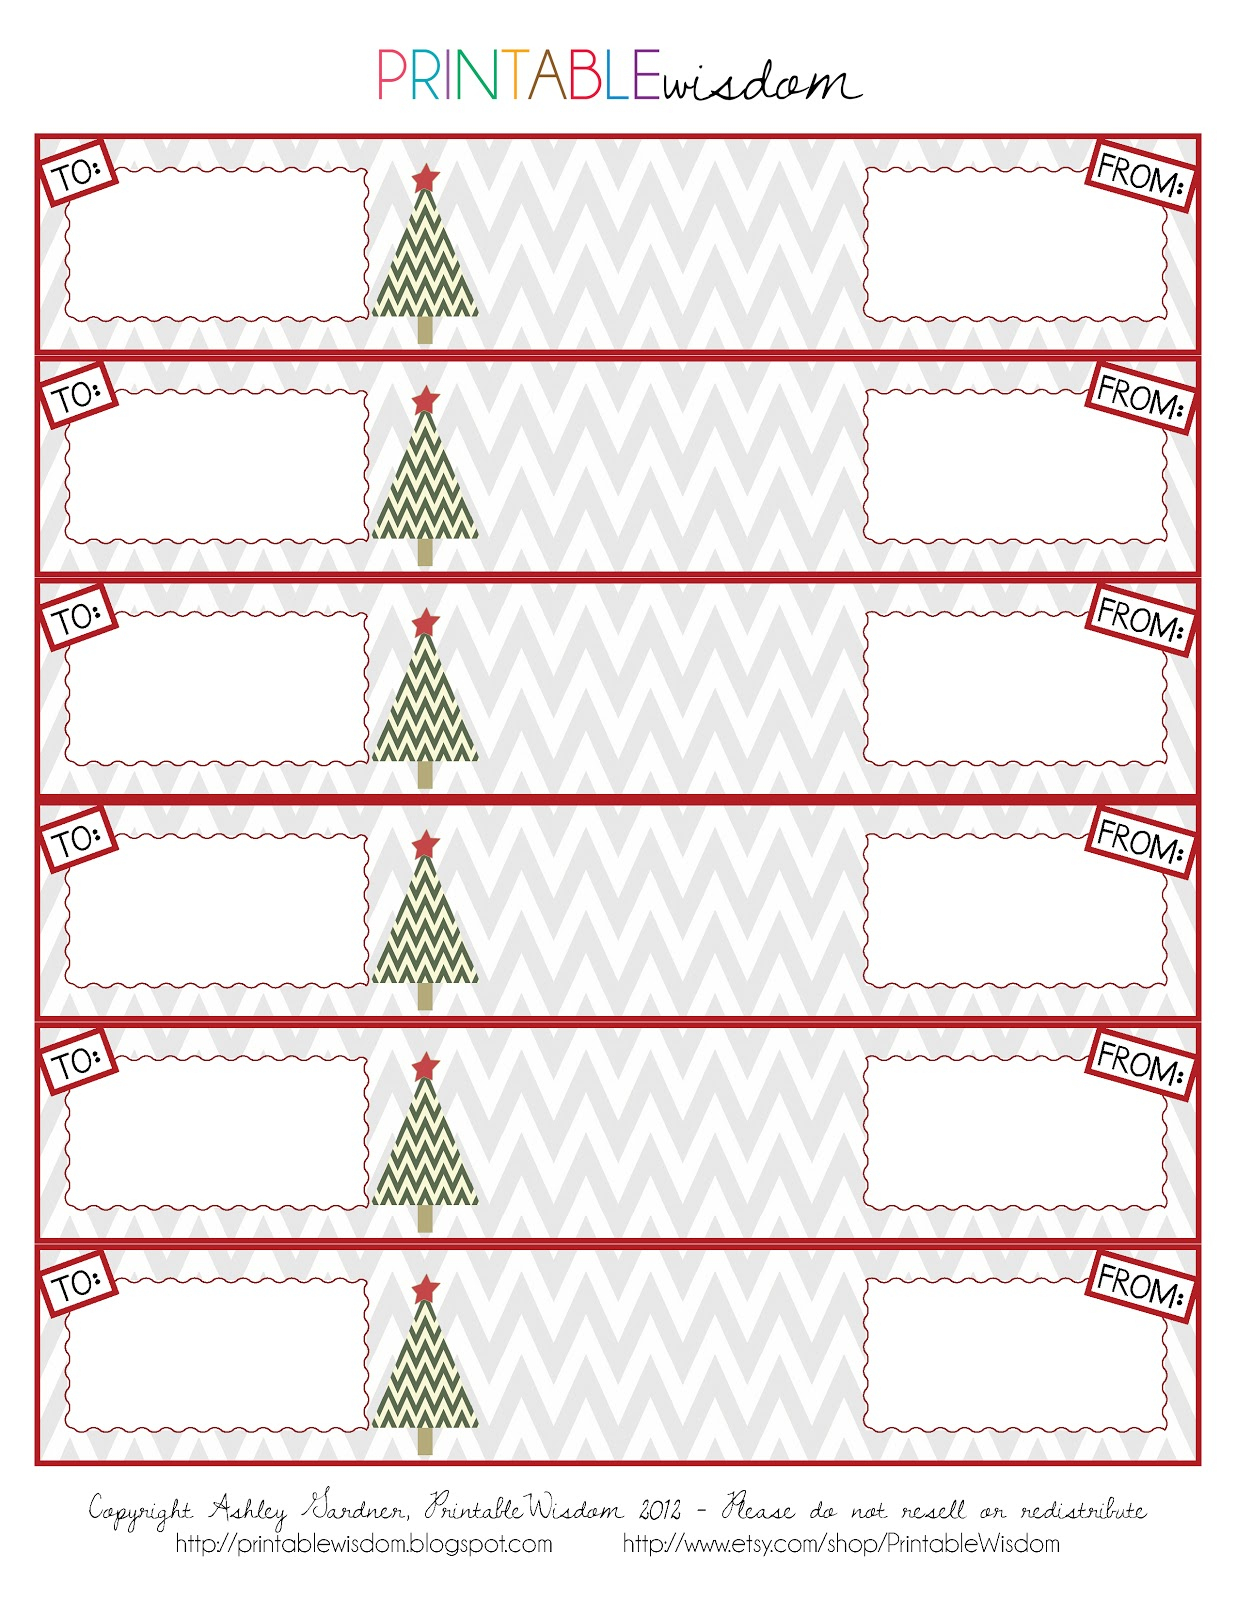 012 Template Ideas Address Label Templates Free Printable Christmas - Free Printable Return Address Labels